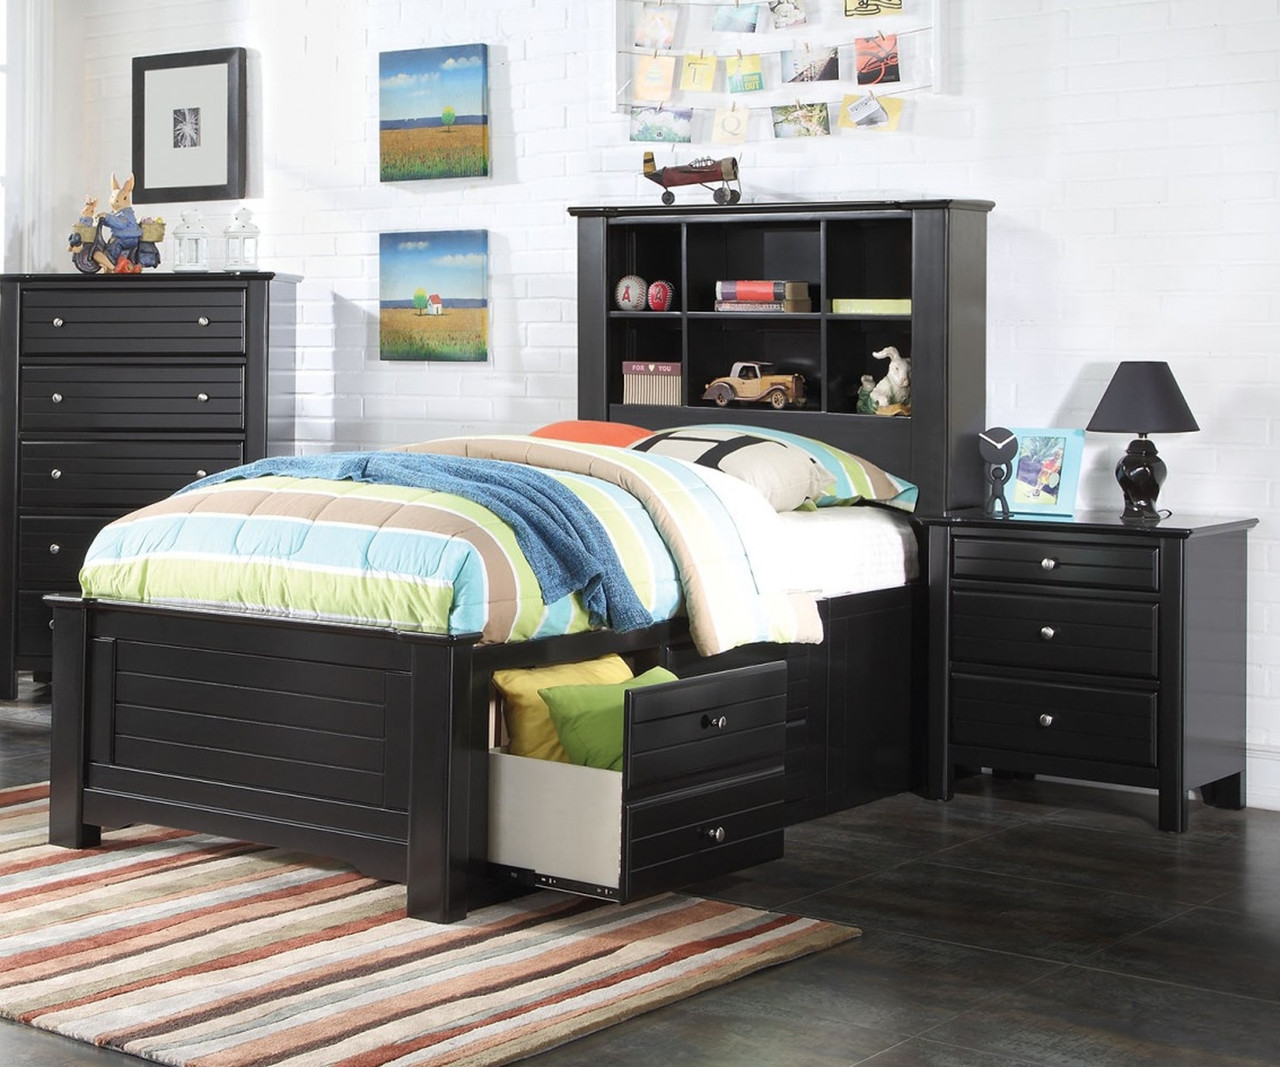 Picture of: Mallowsea Twin Size Bookcase Storage Bed In Black Finish 30390t Acme Furniture Kids And Teens Bedroom Furniture